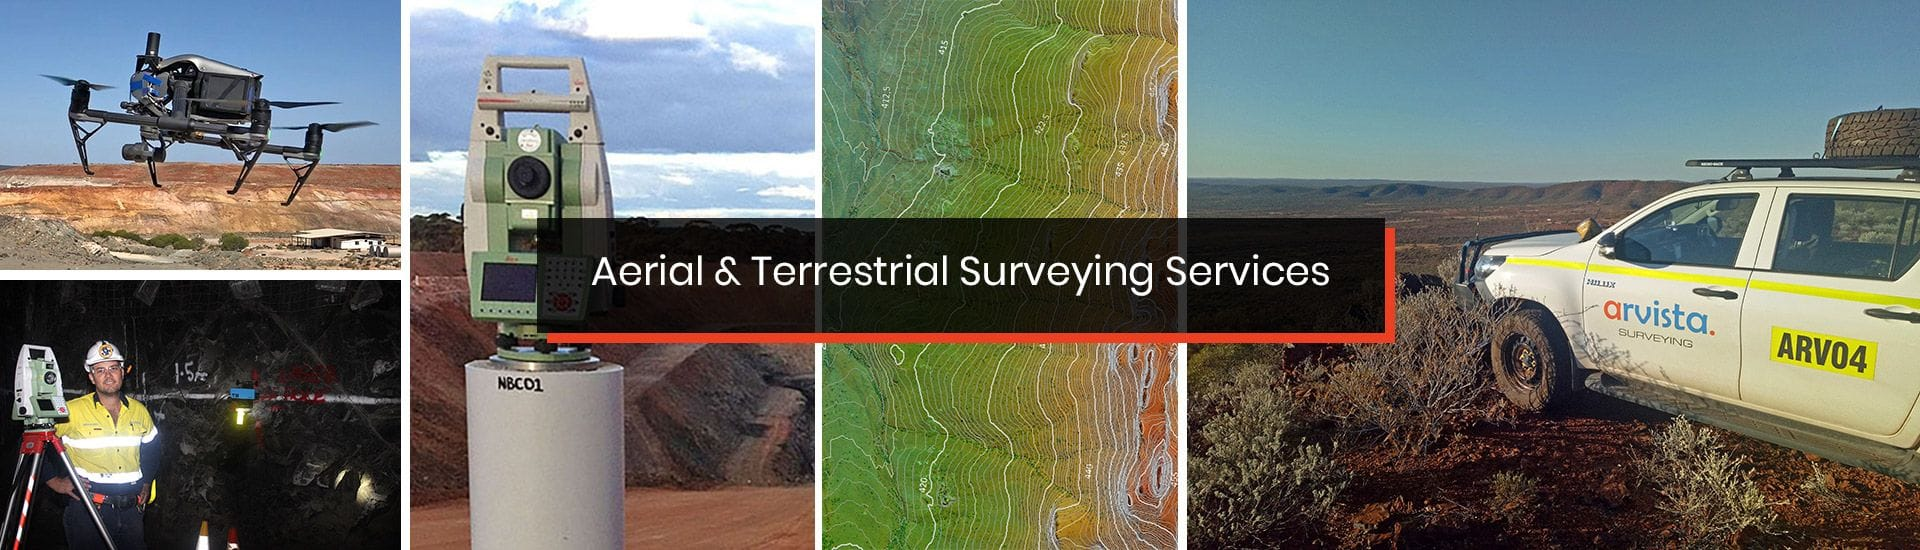 Arvista | Aerial & Terrestrial Surveying Services